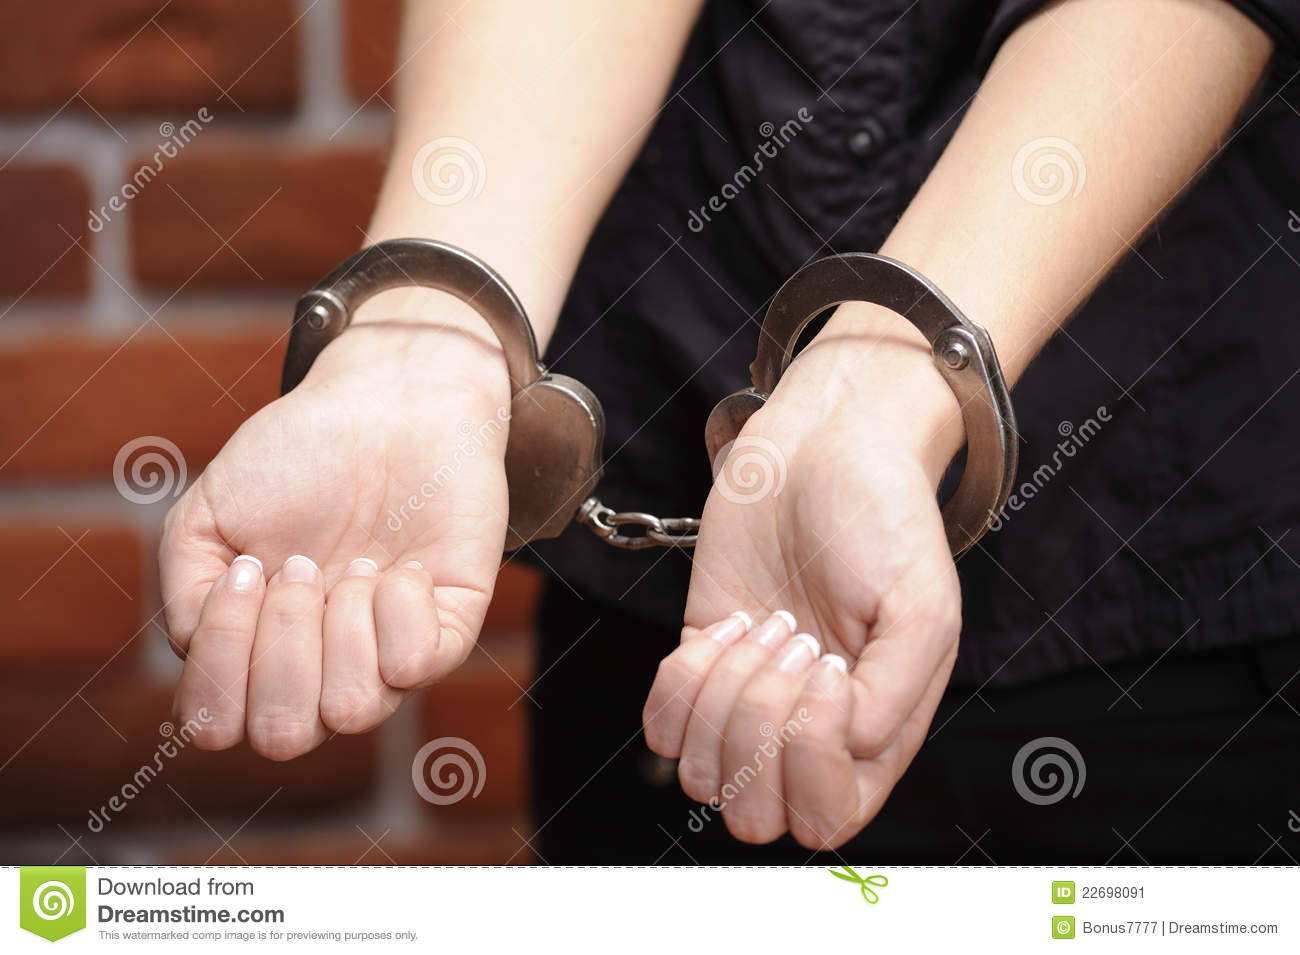 girl in handcuffs stock image image 22698091 clip art handcuffed felon clip art handcuff keys